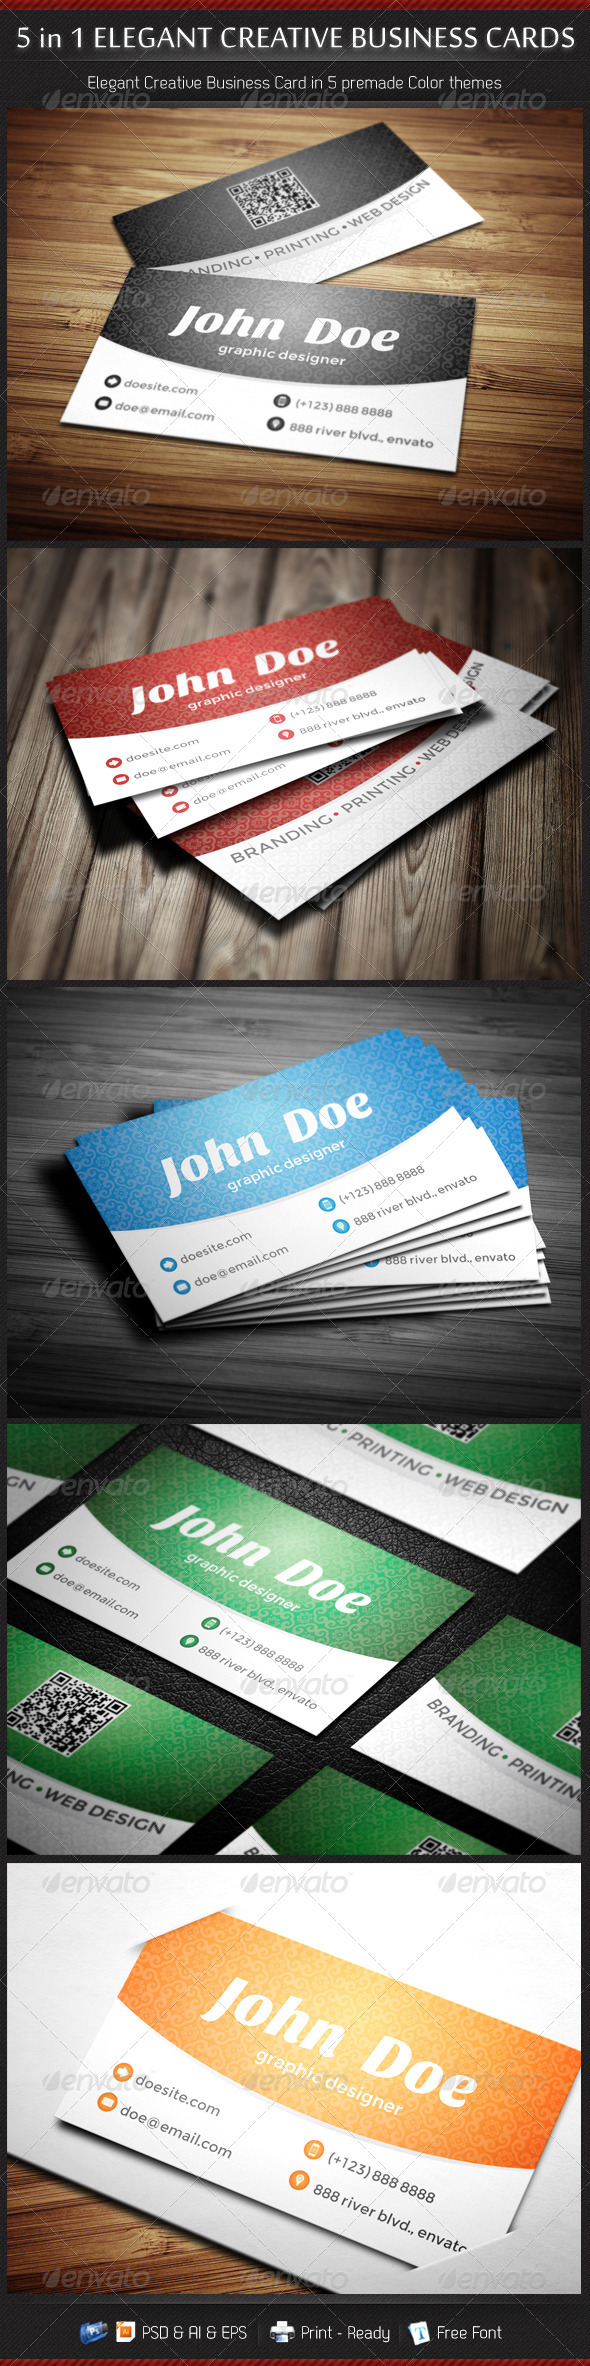 5 in 1 Creative Elegant Business Card Template by gbs | GraphicRiver